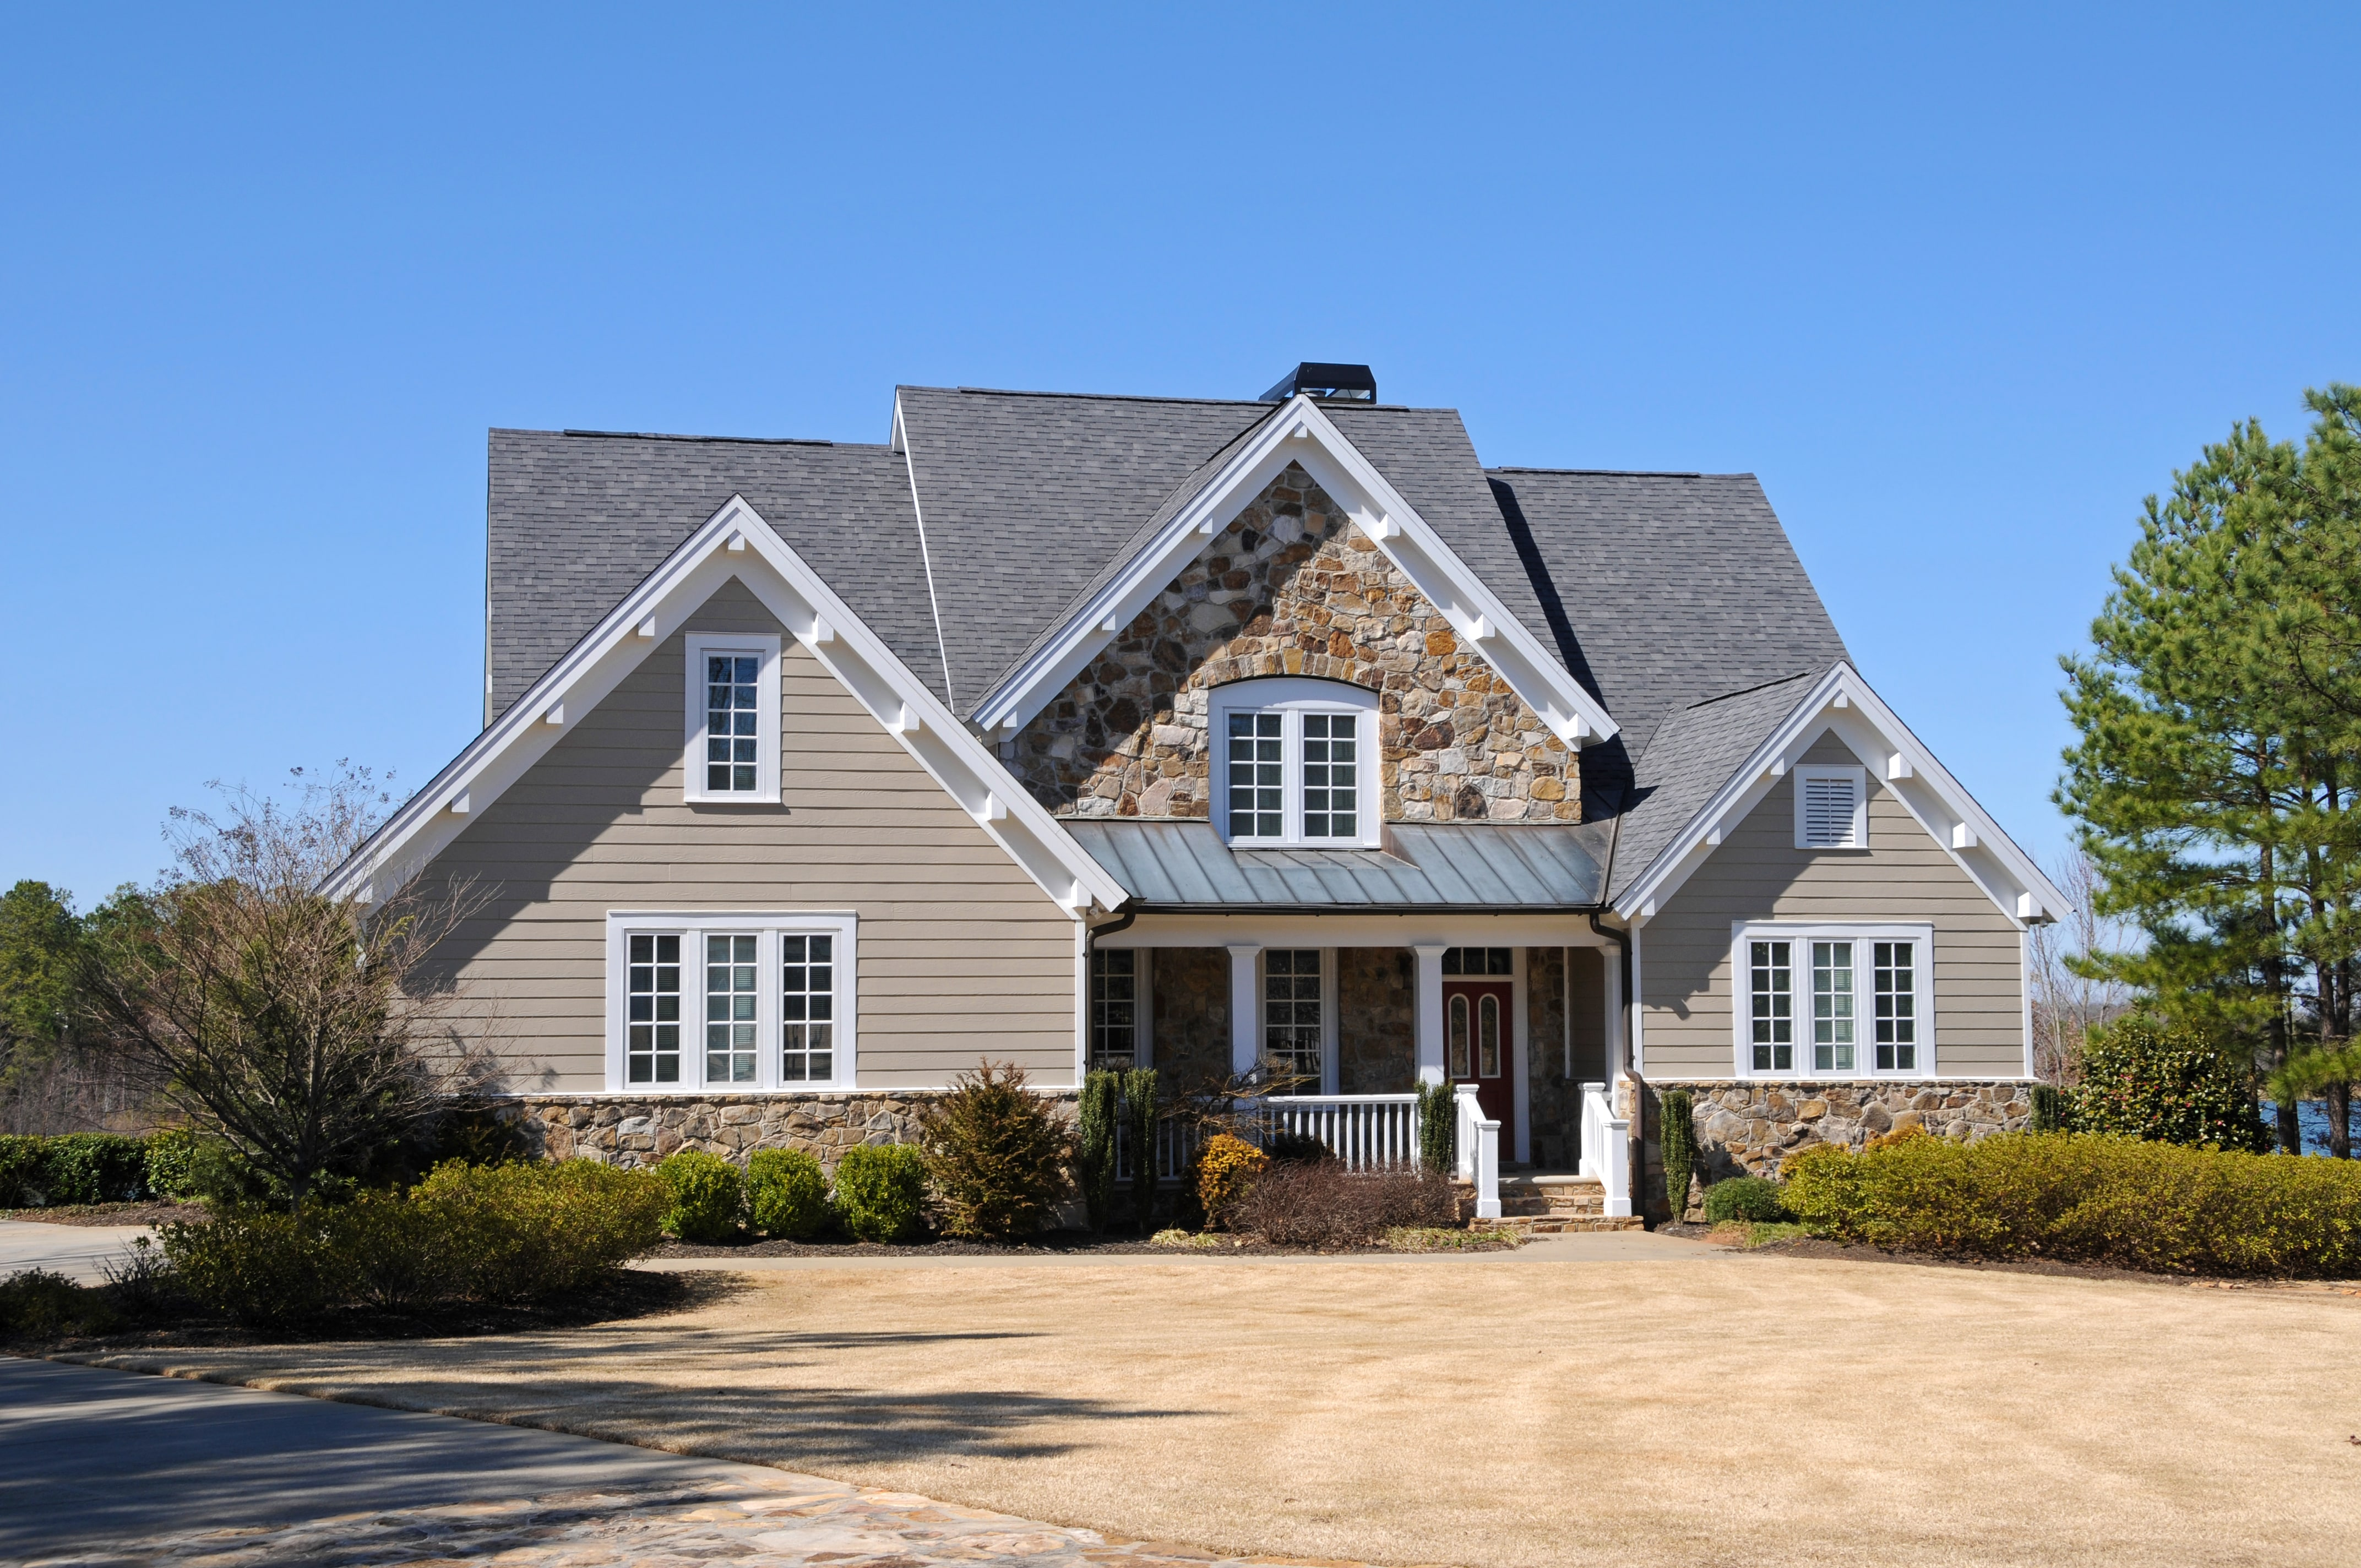 Severna Park Property Management